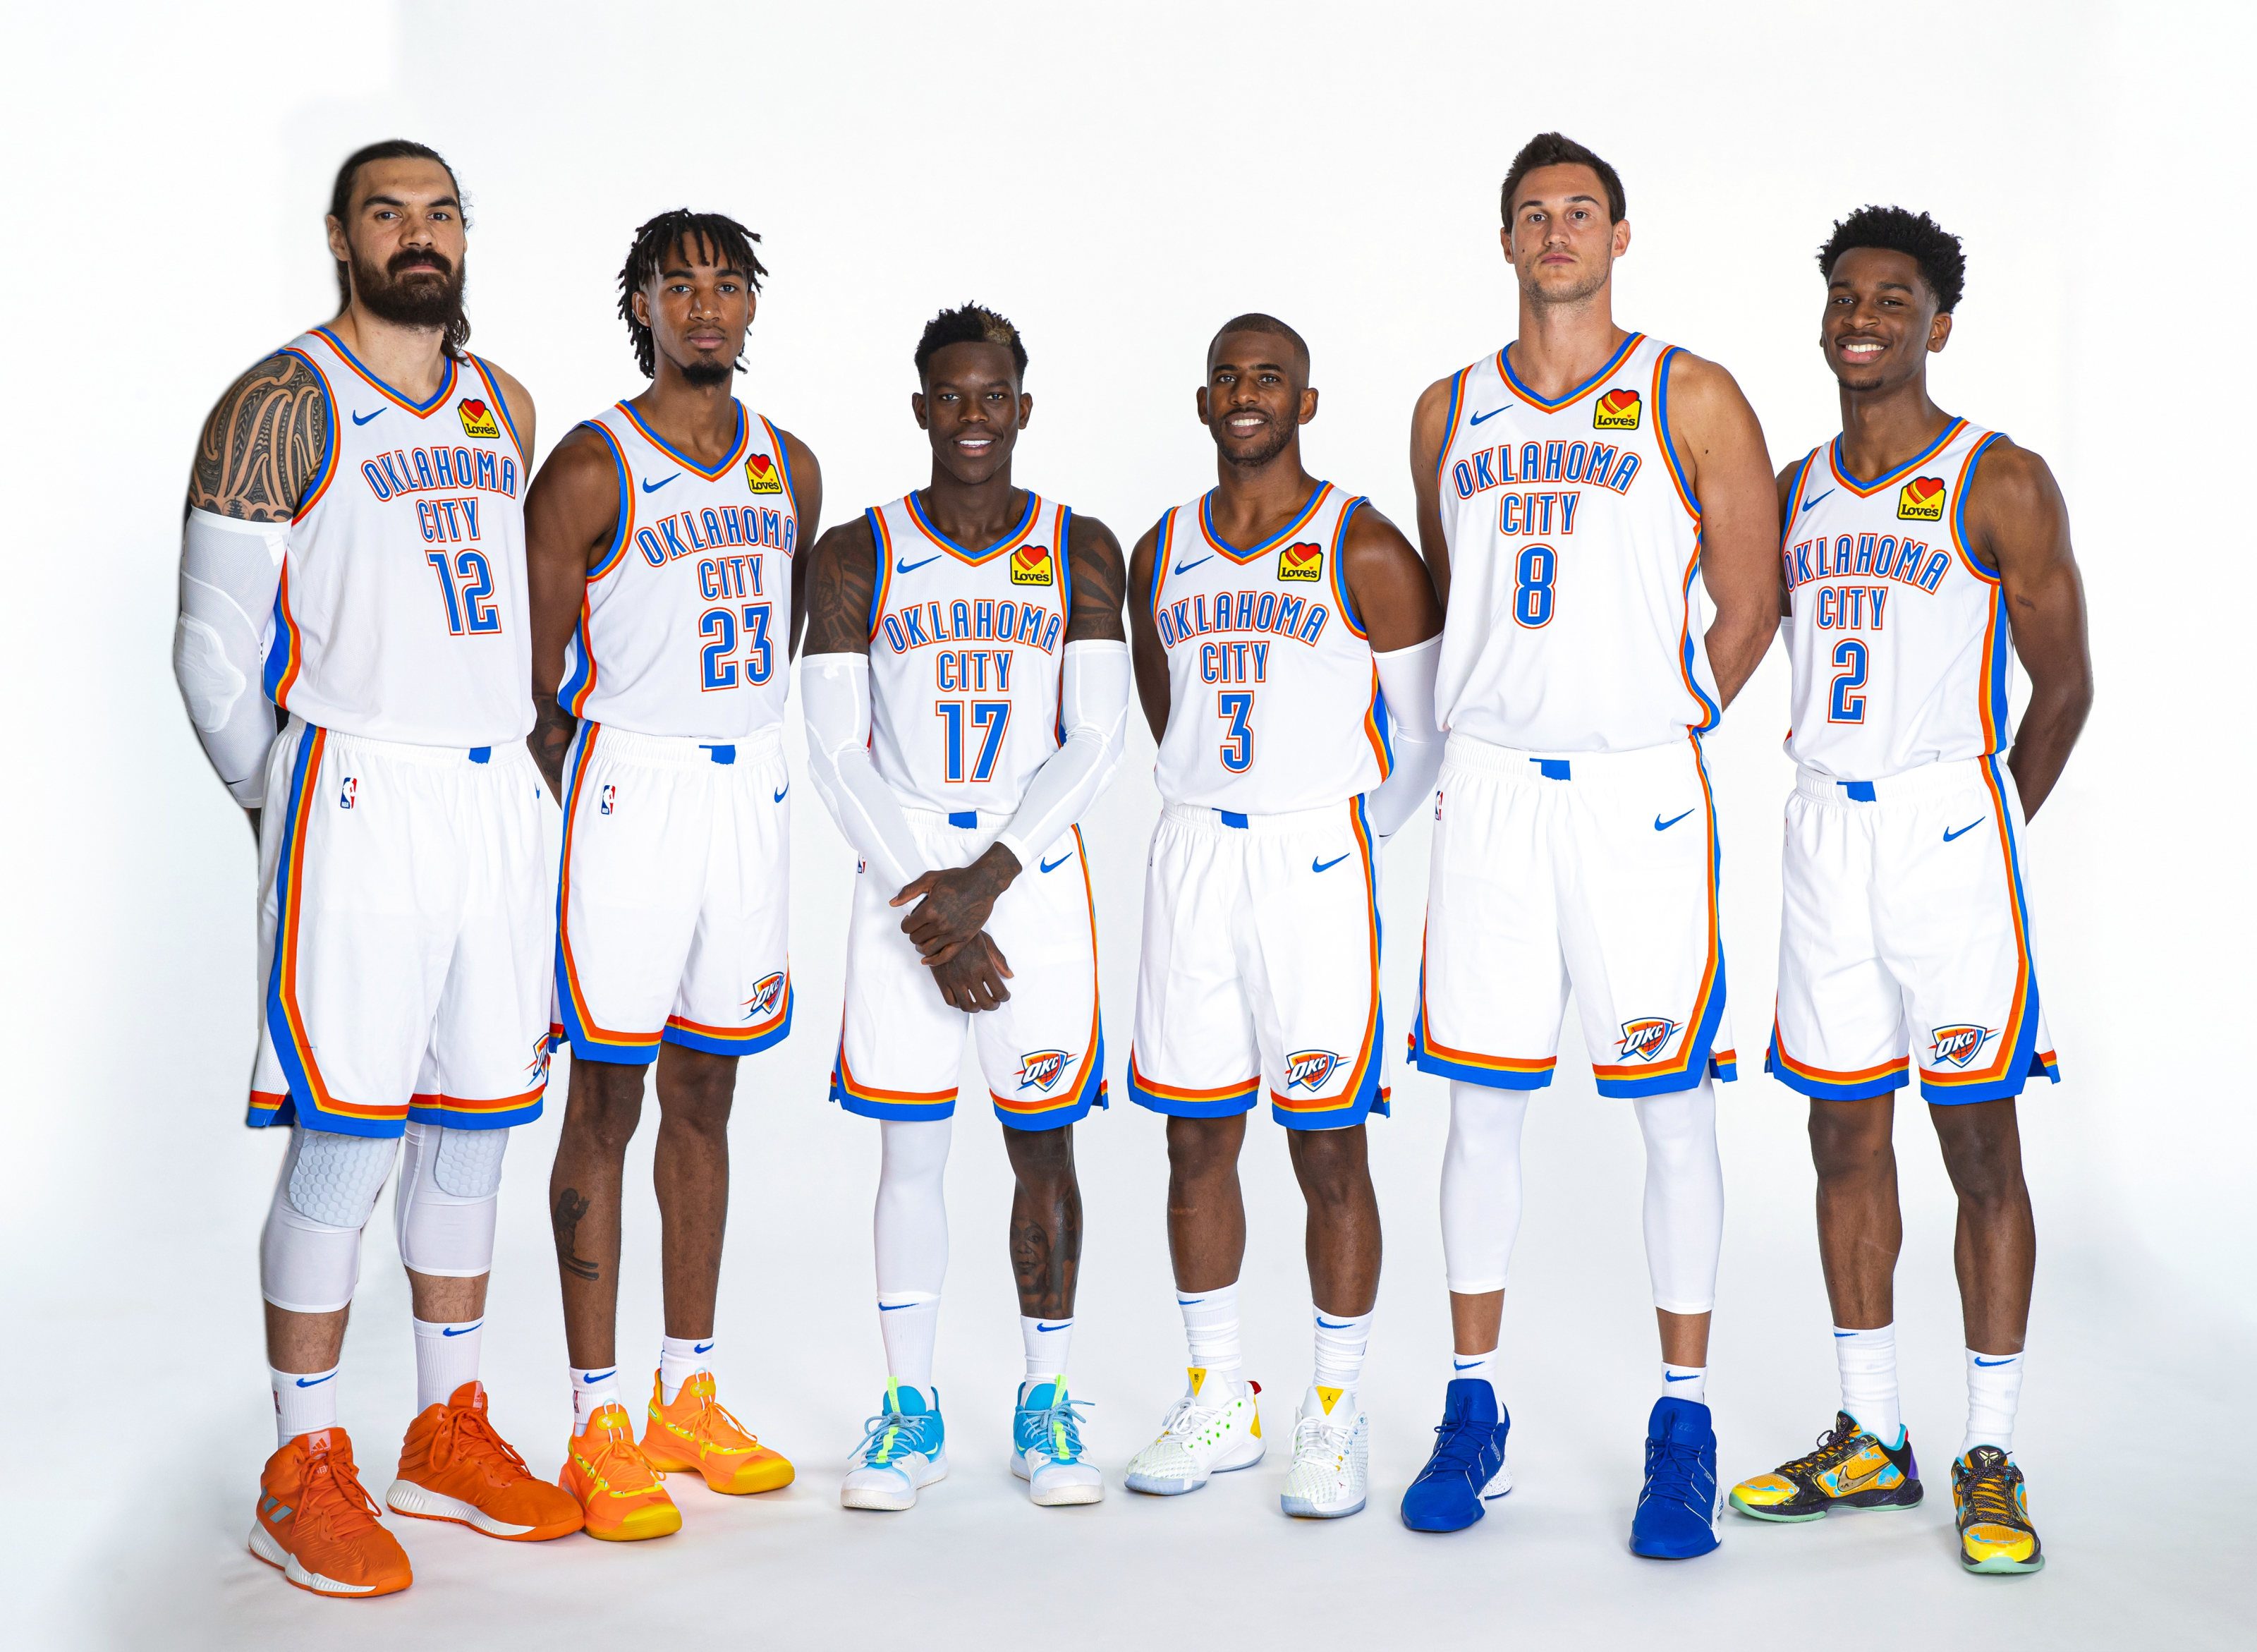 nba season preview 2019 20 5 biggest questions for okc thunder https fansided com 2019 10 15 nba season preview 2019 20 thunder big questions